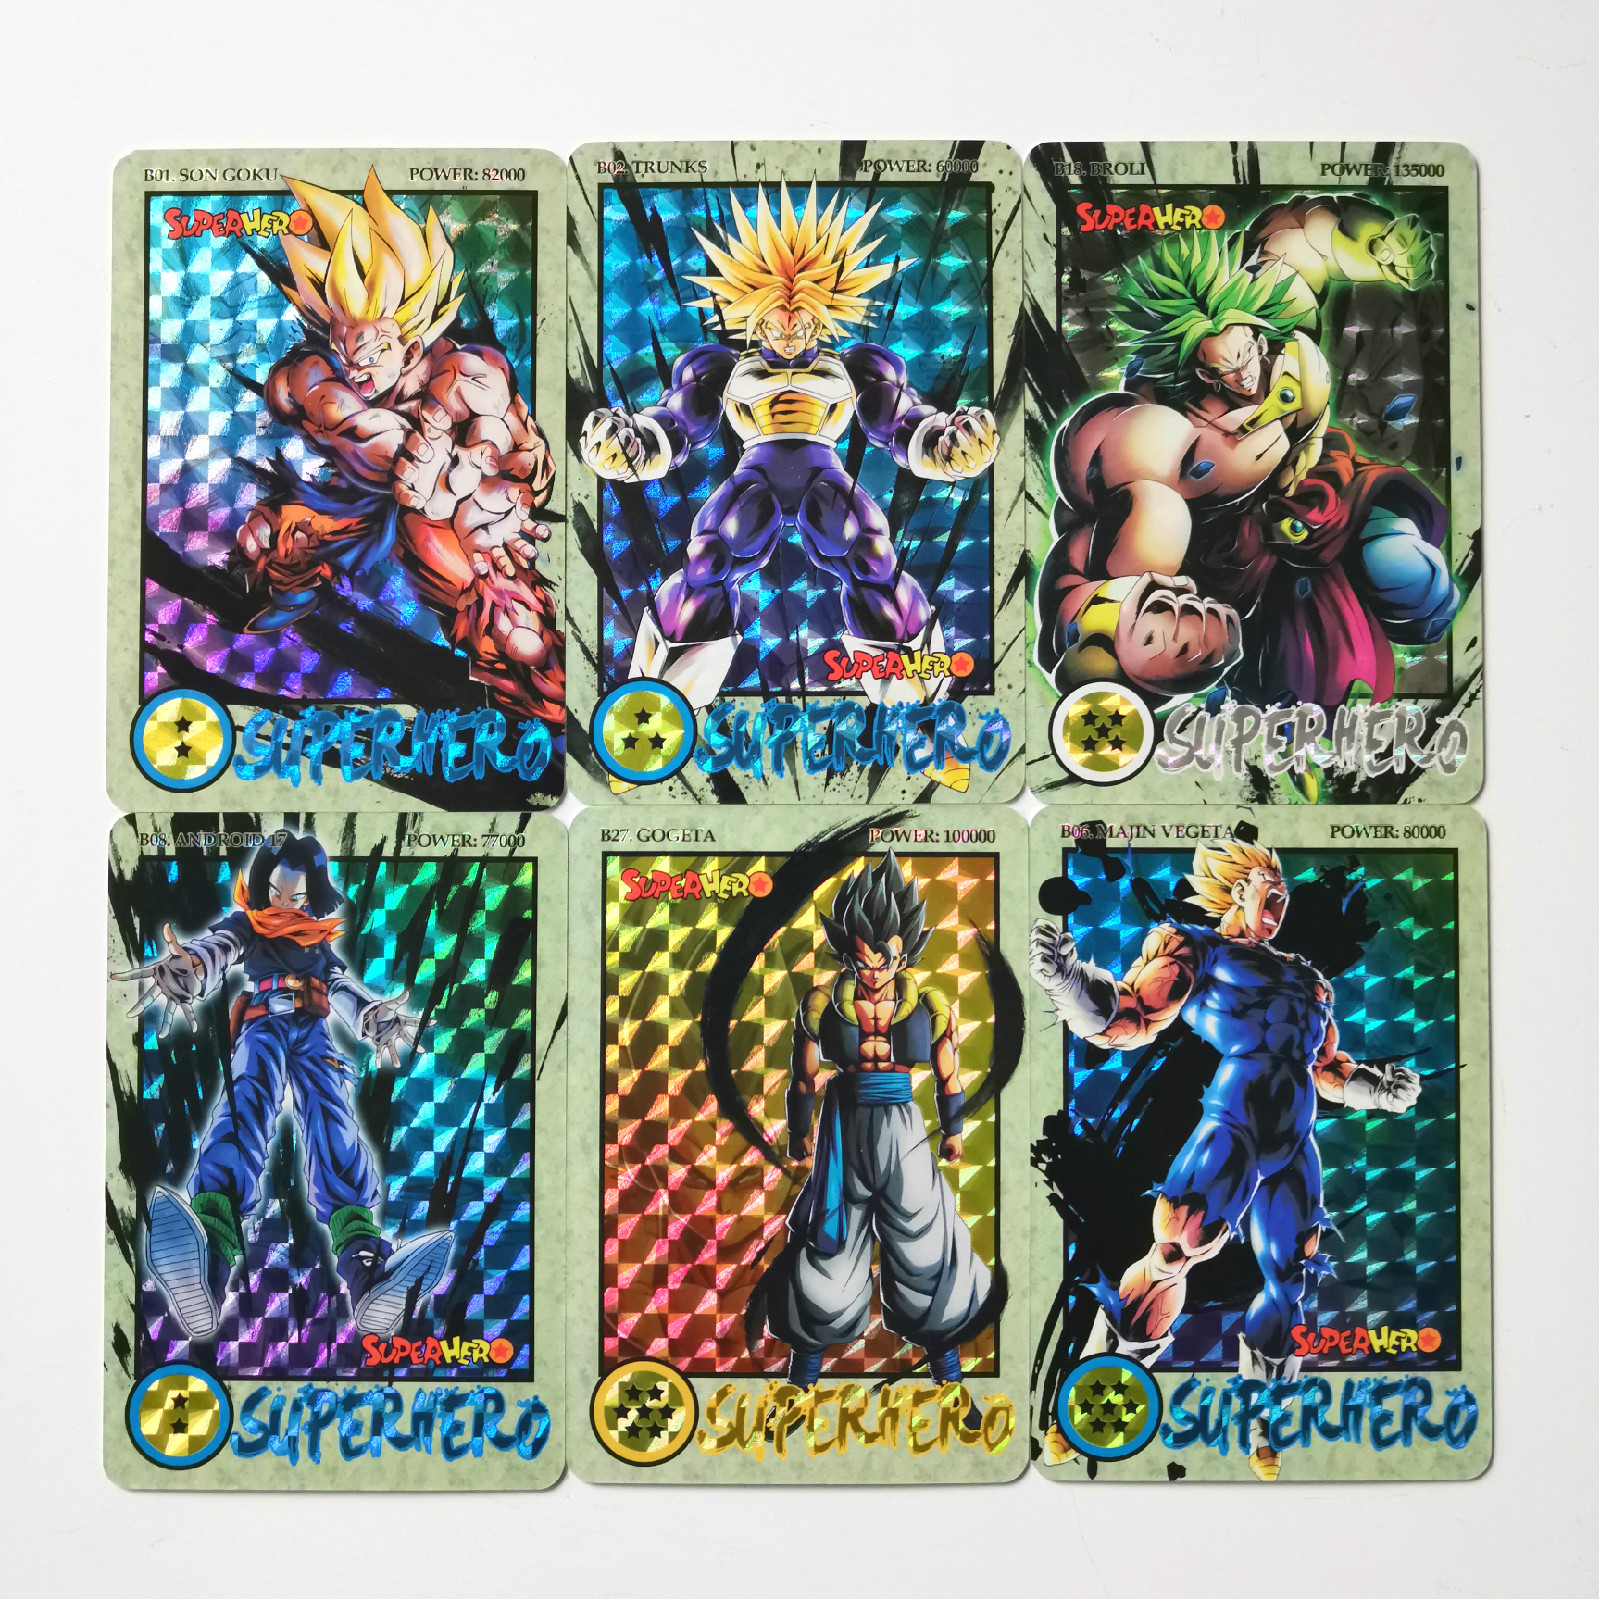 27pcs/set Super Dragon Ball Z Ink Relief Heroes Battle Card Ultra Instinct Goku Vegeta Game Collection Cards image